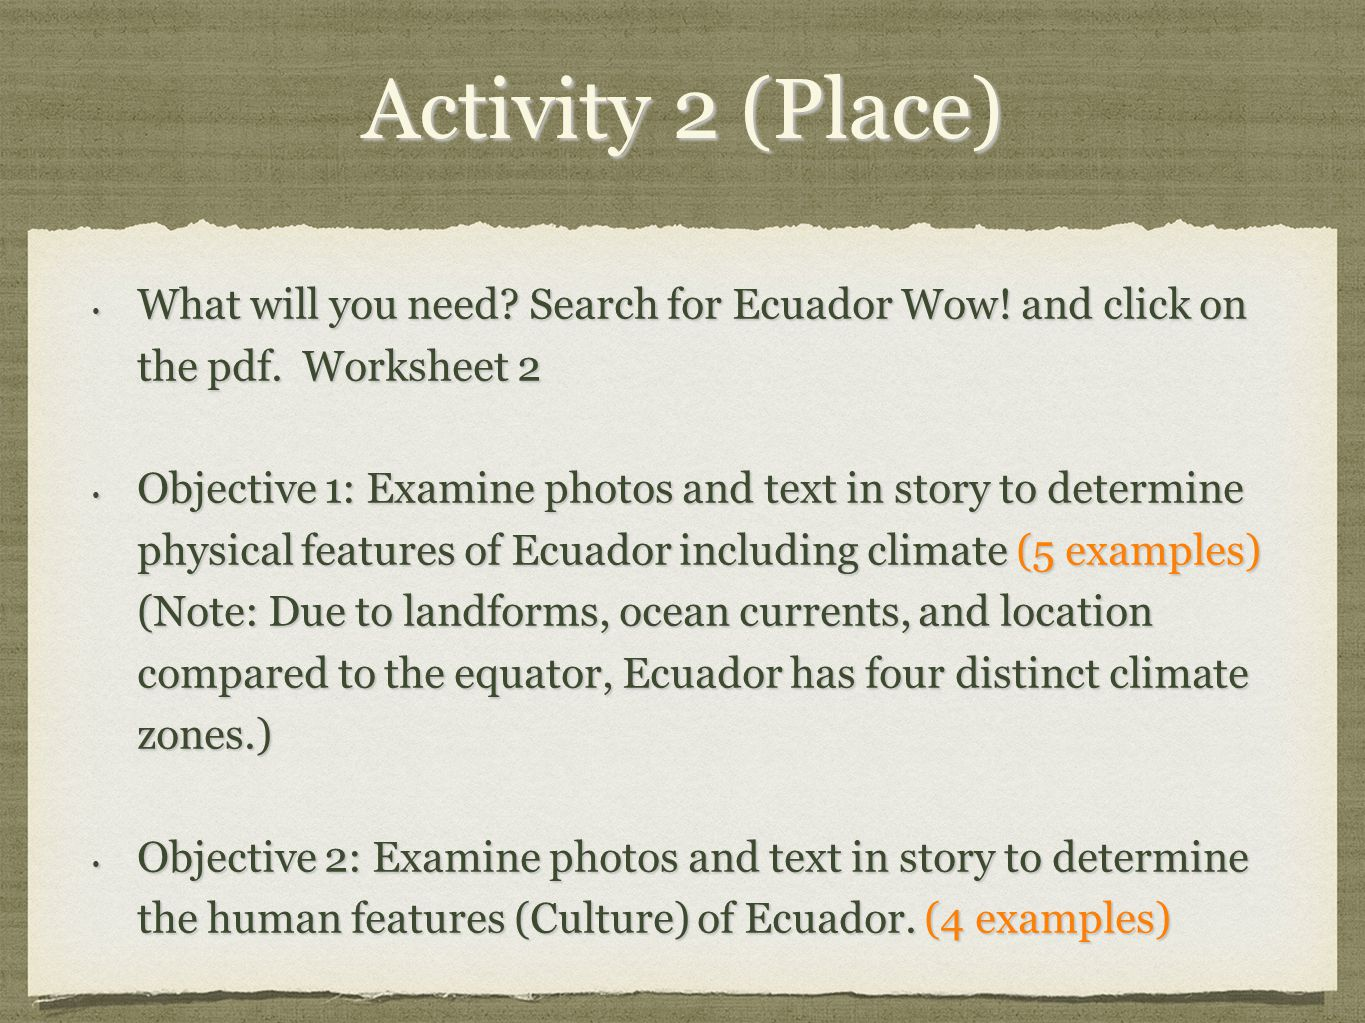 Worksheets 5 Themes Of Geography Worksheet 5 themes of geography ecuador ppt video online download 3 activity